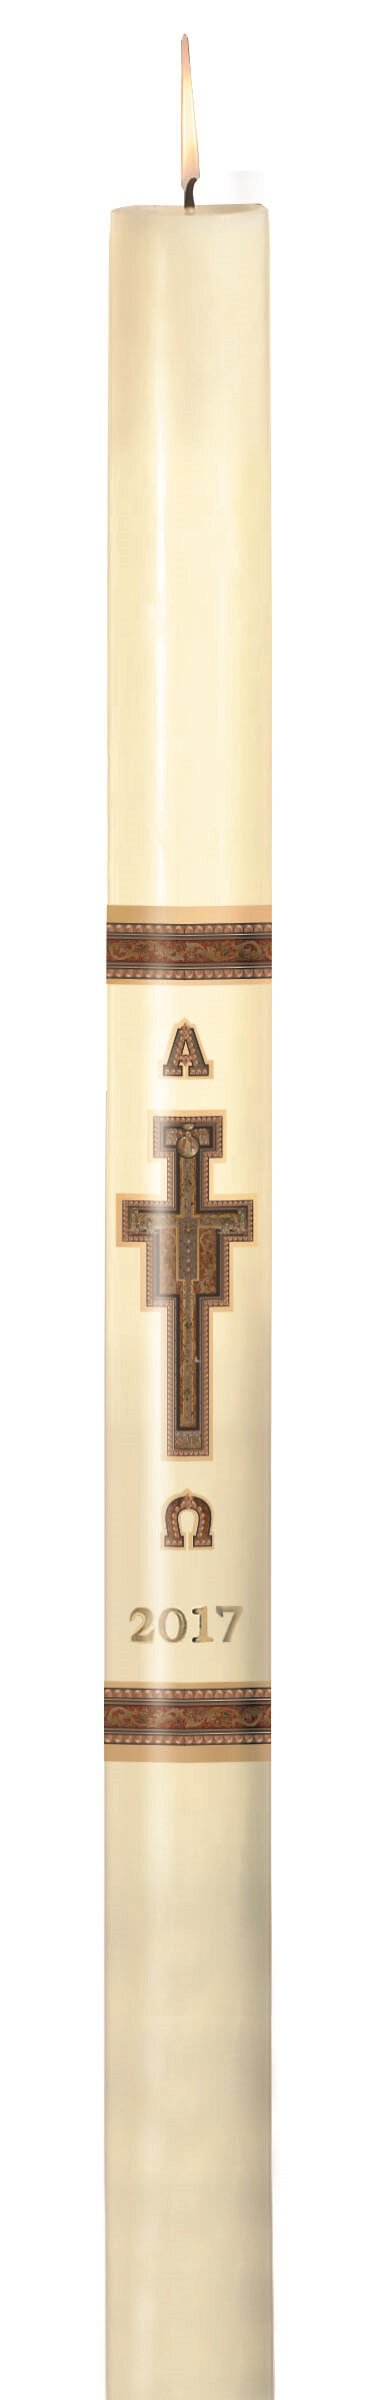 No 3 San Damiano Paschal Candle